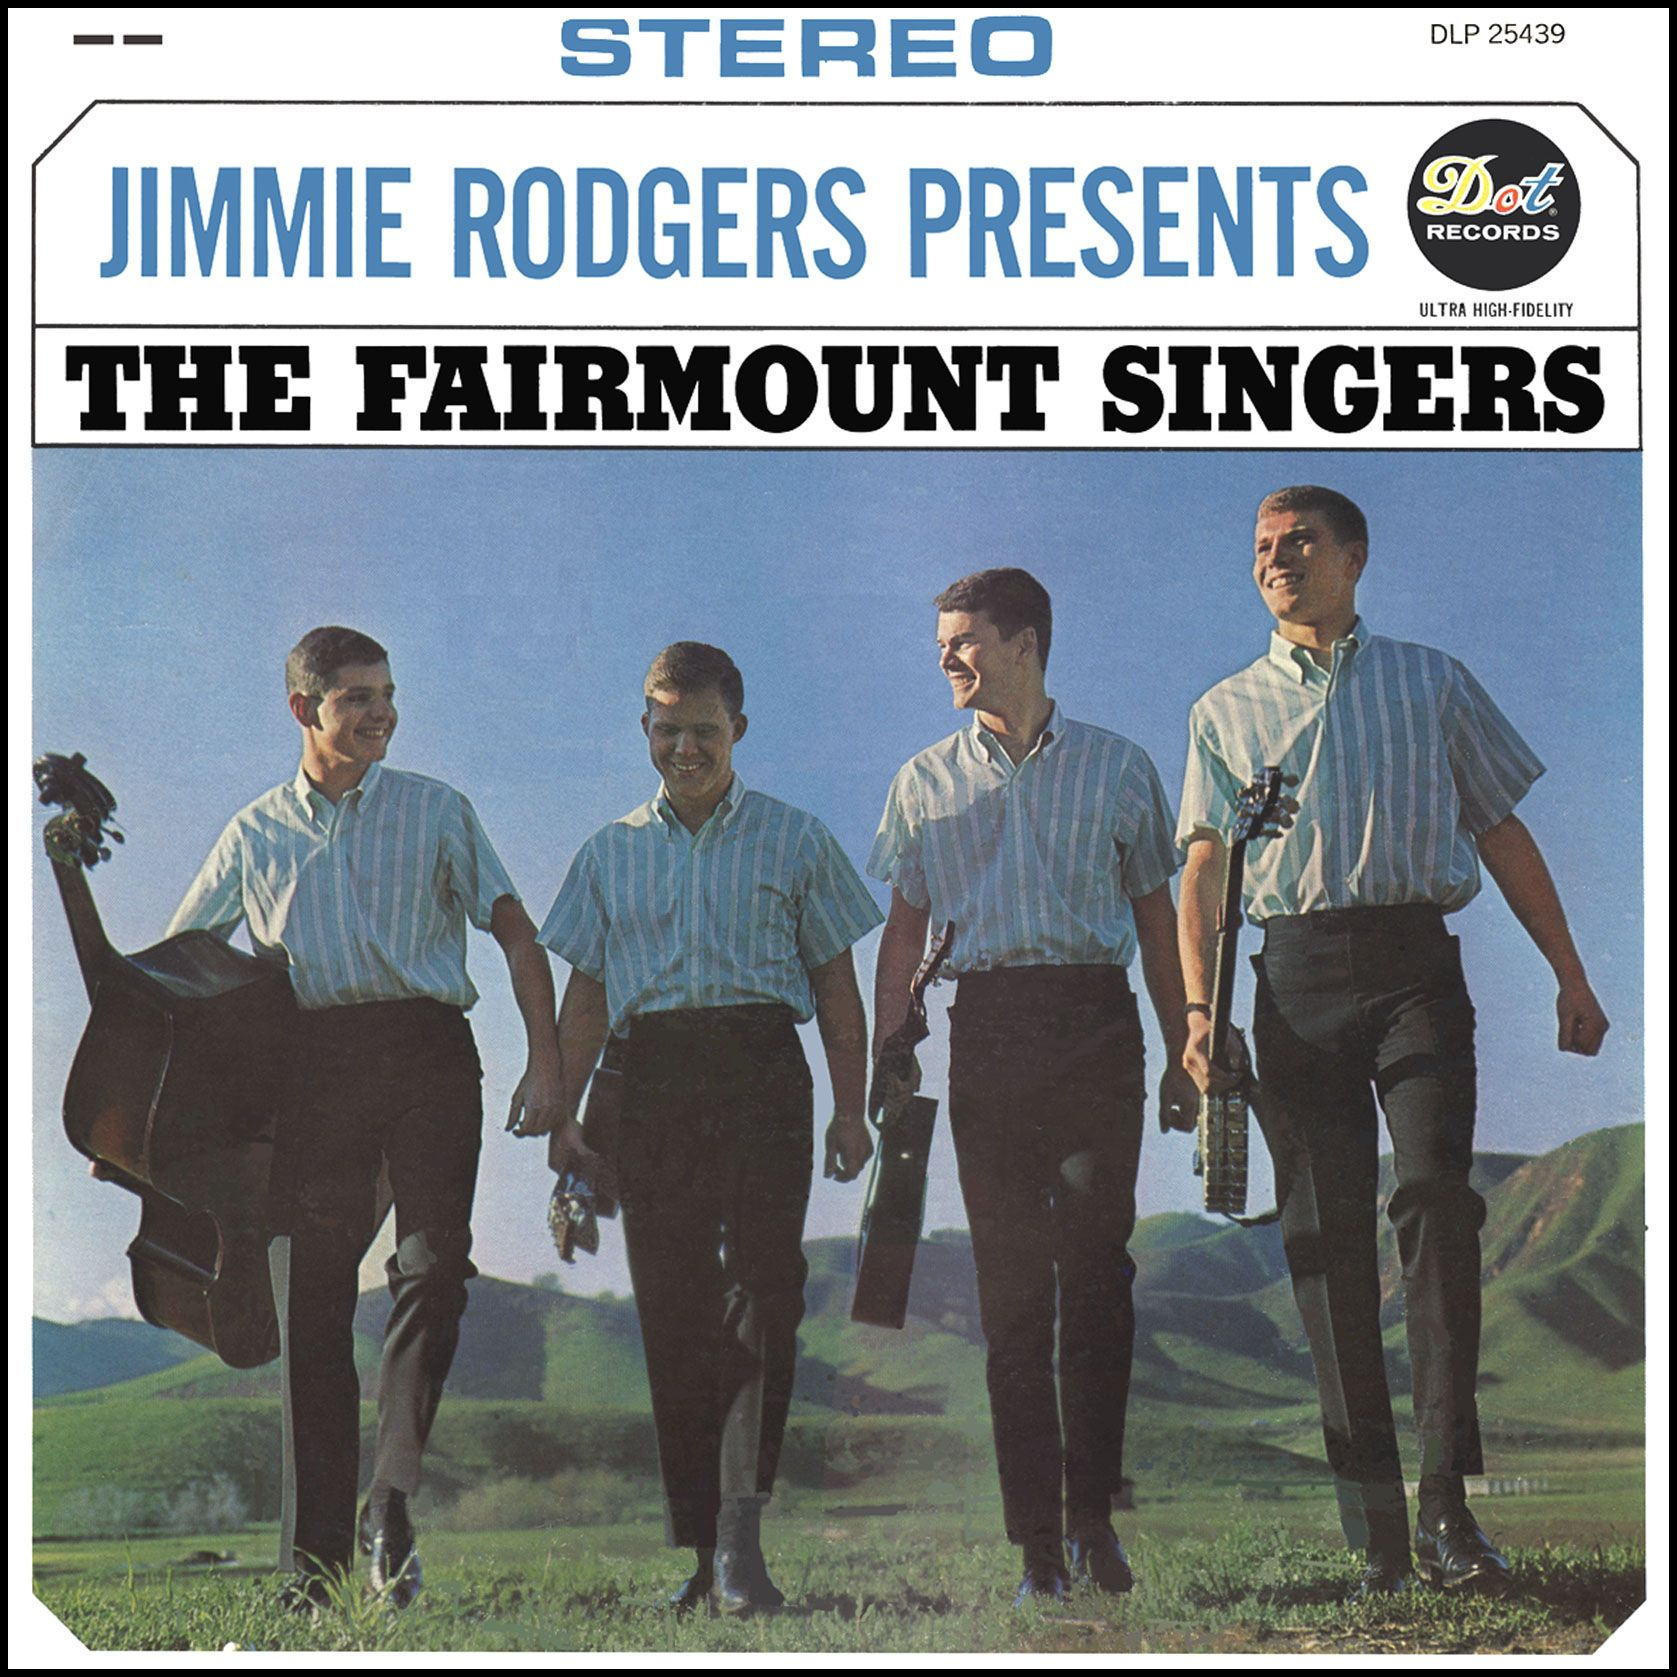 Jimmie Rodgers Presents The Fairmount Singers Dot